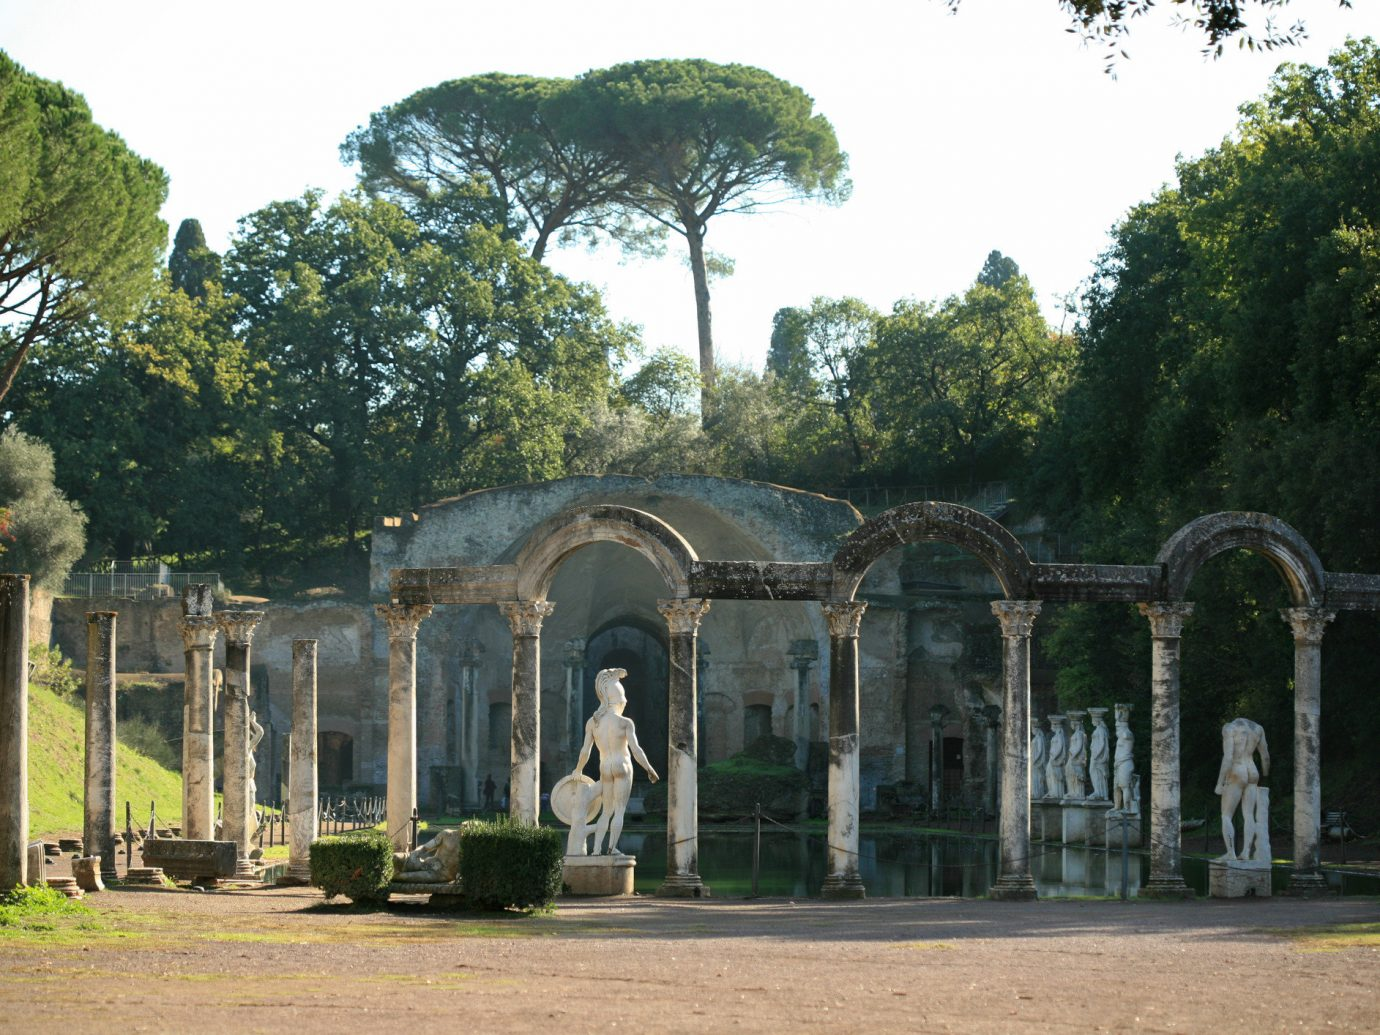 Trip Ideas tree outdoor building structure estate Garden ancient history grass stately home Ruins mansion plant archaeological site park palace column hacienda outdoor structure landscape arch ruin